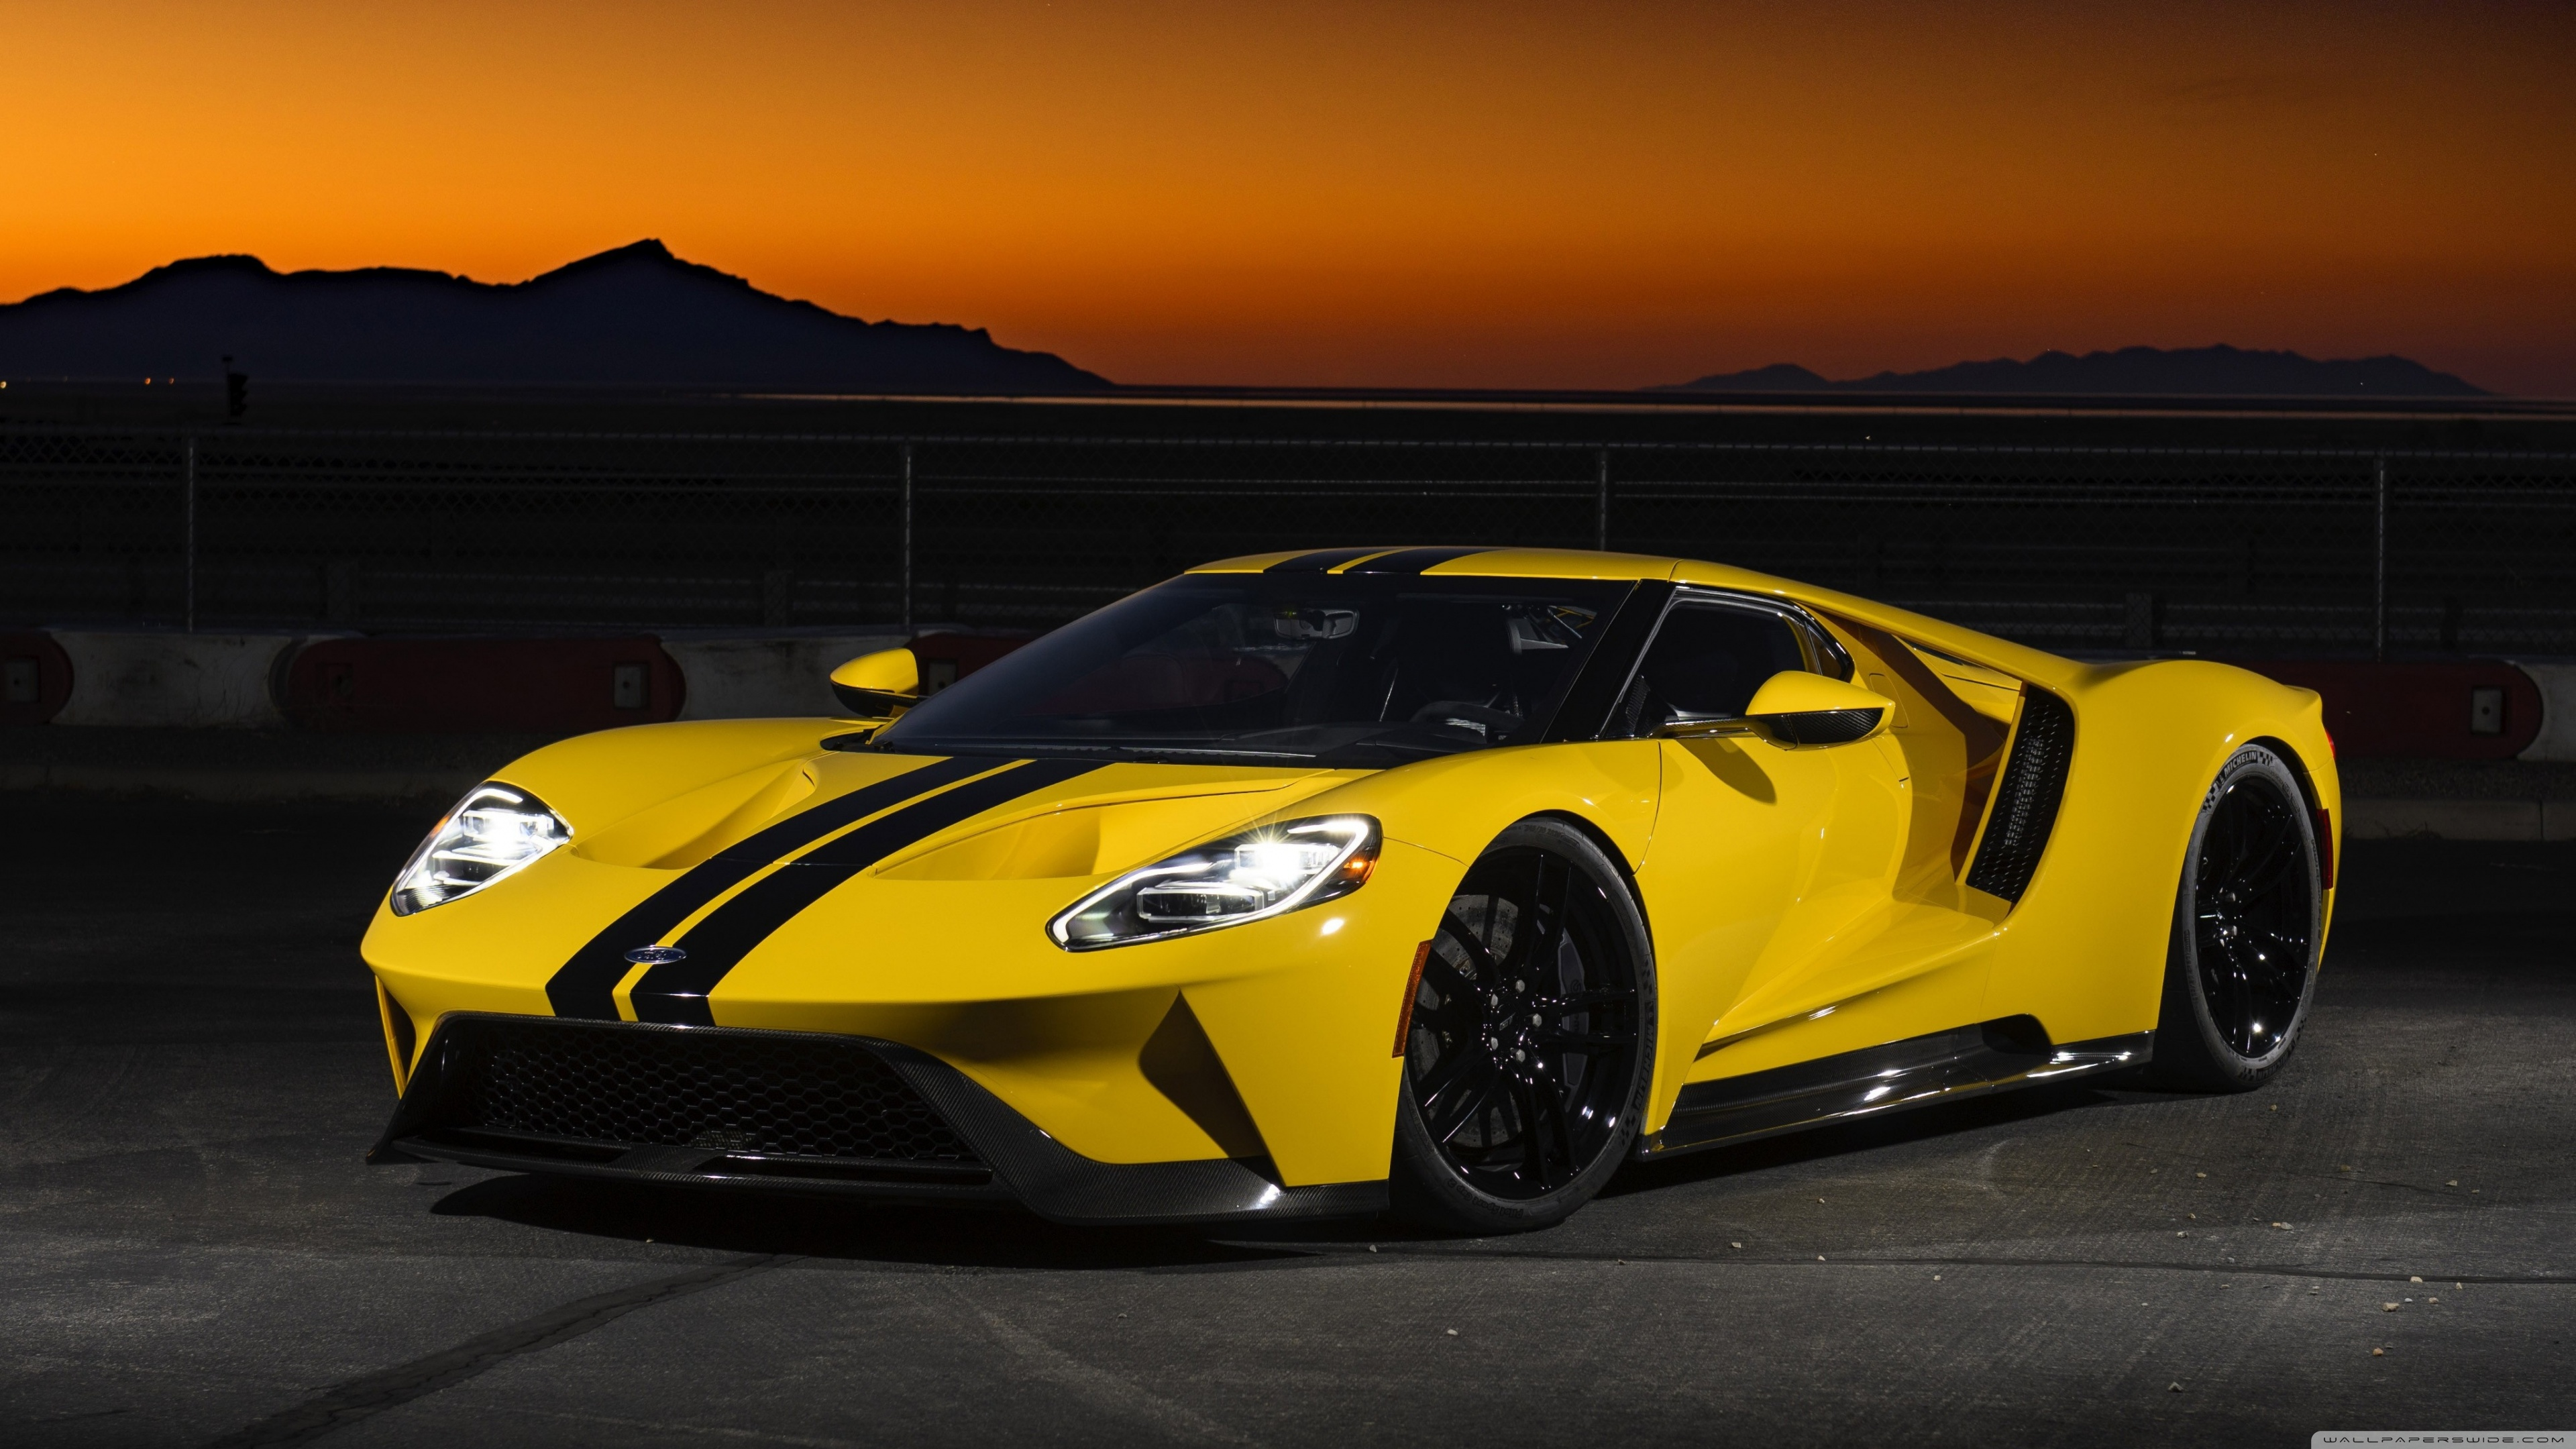 Ford GT Yellow Car High Resolution Wallpaper for Desktop